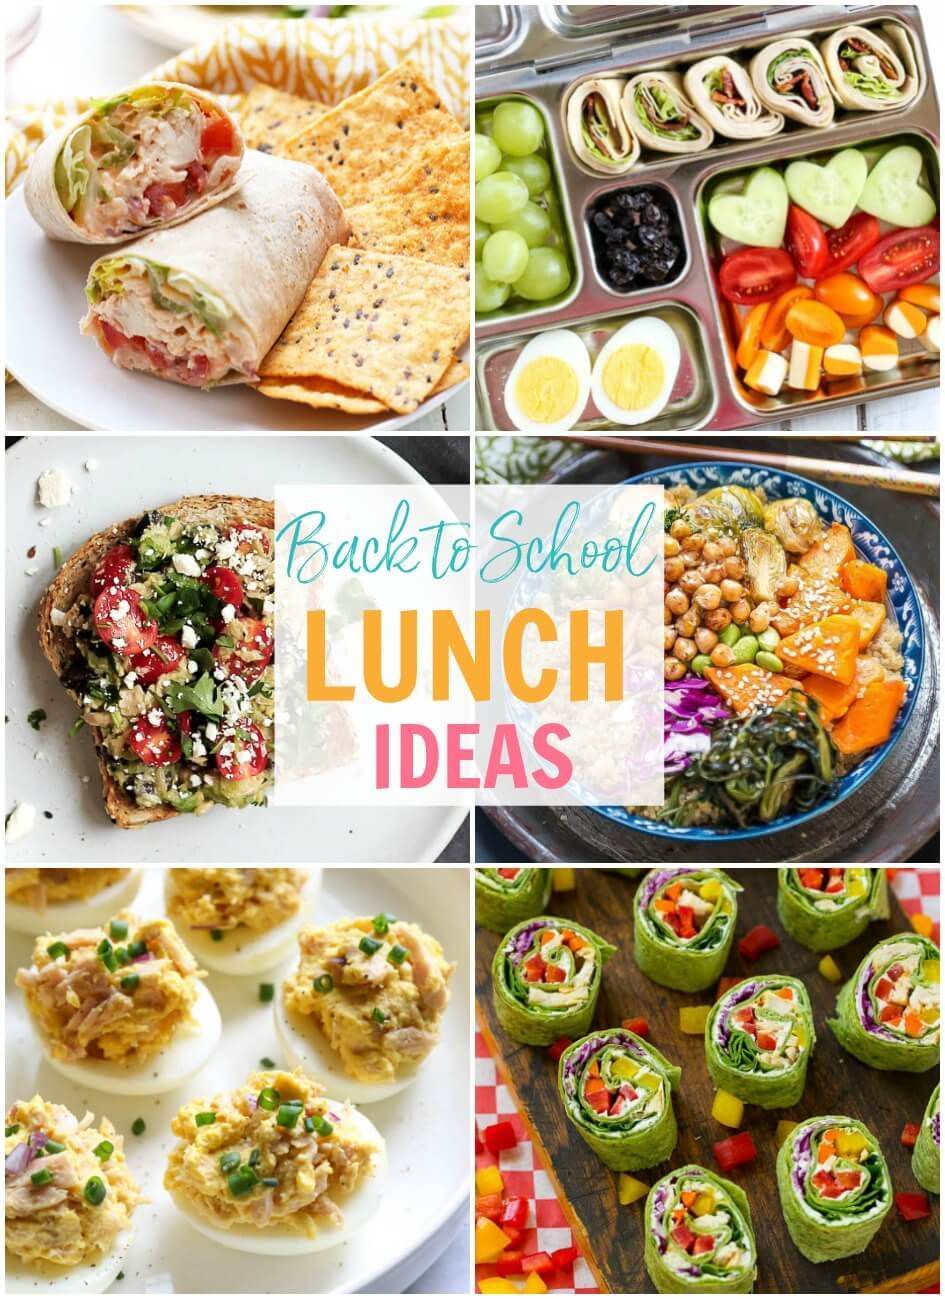 20 easy meal prep school lunch ideas - the girl on bloor images